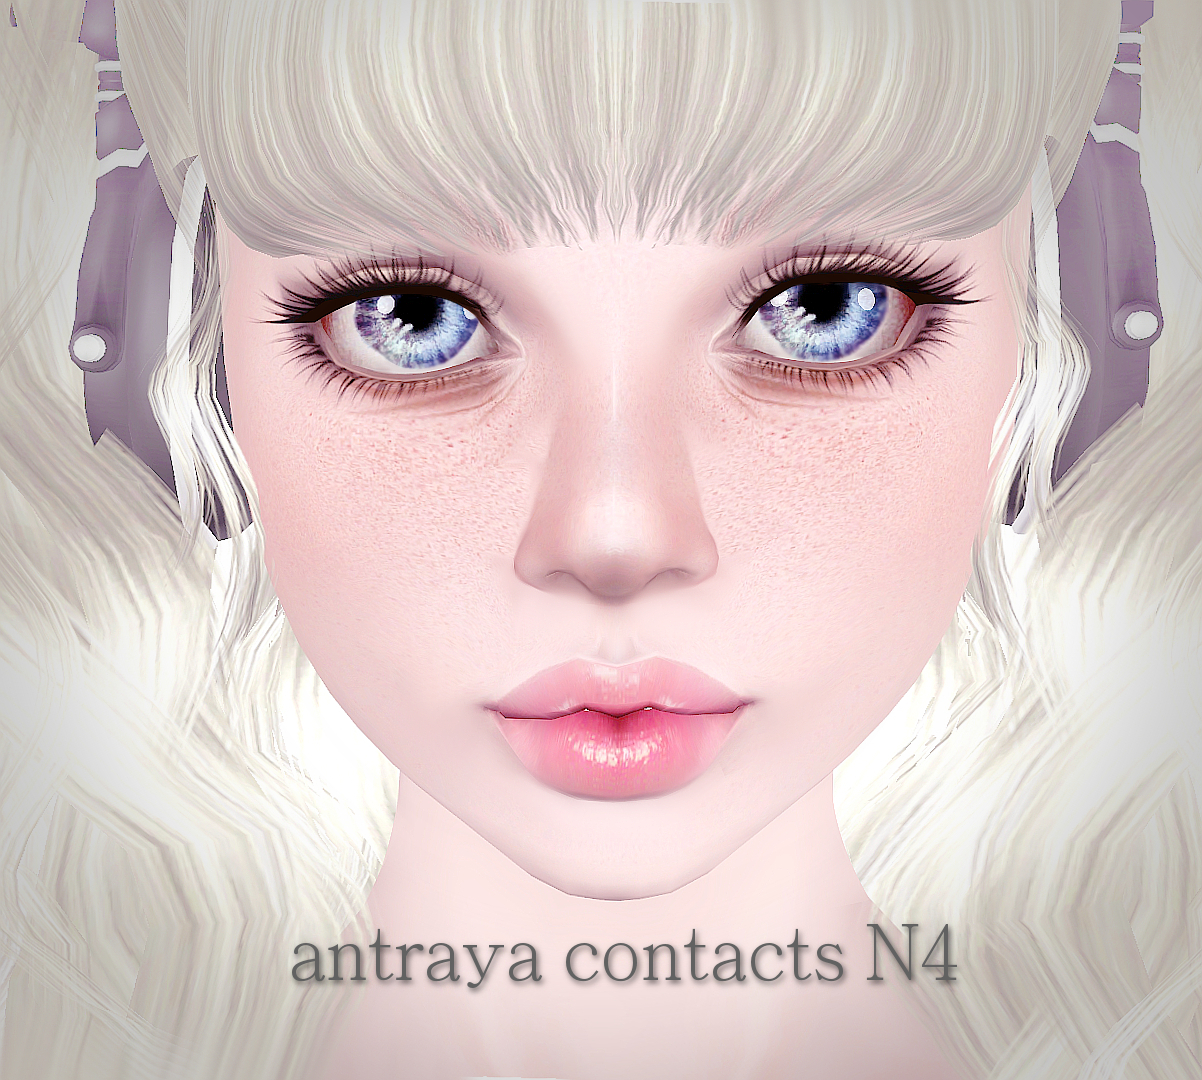 Contact lenses N4 by antraya